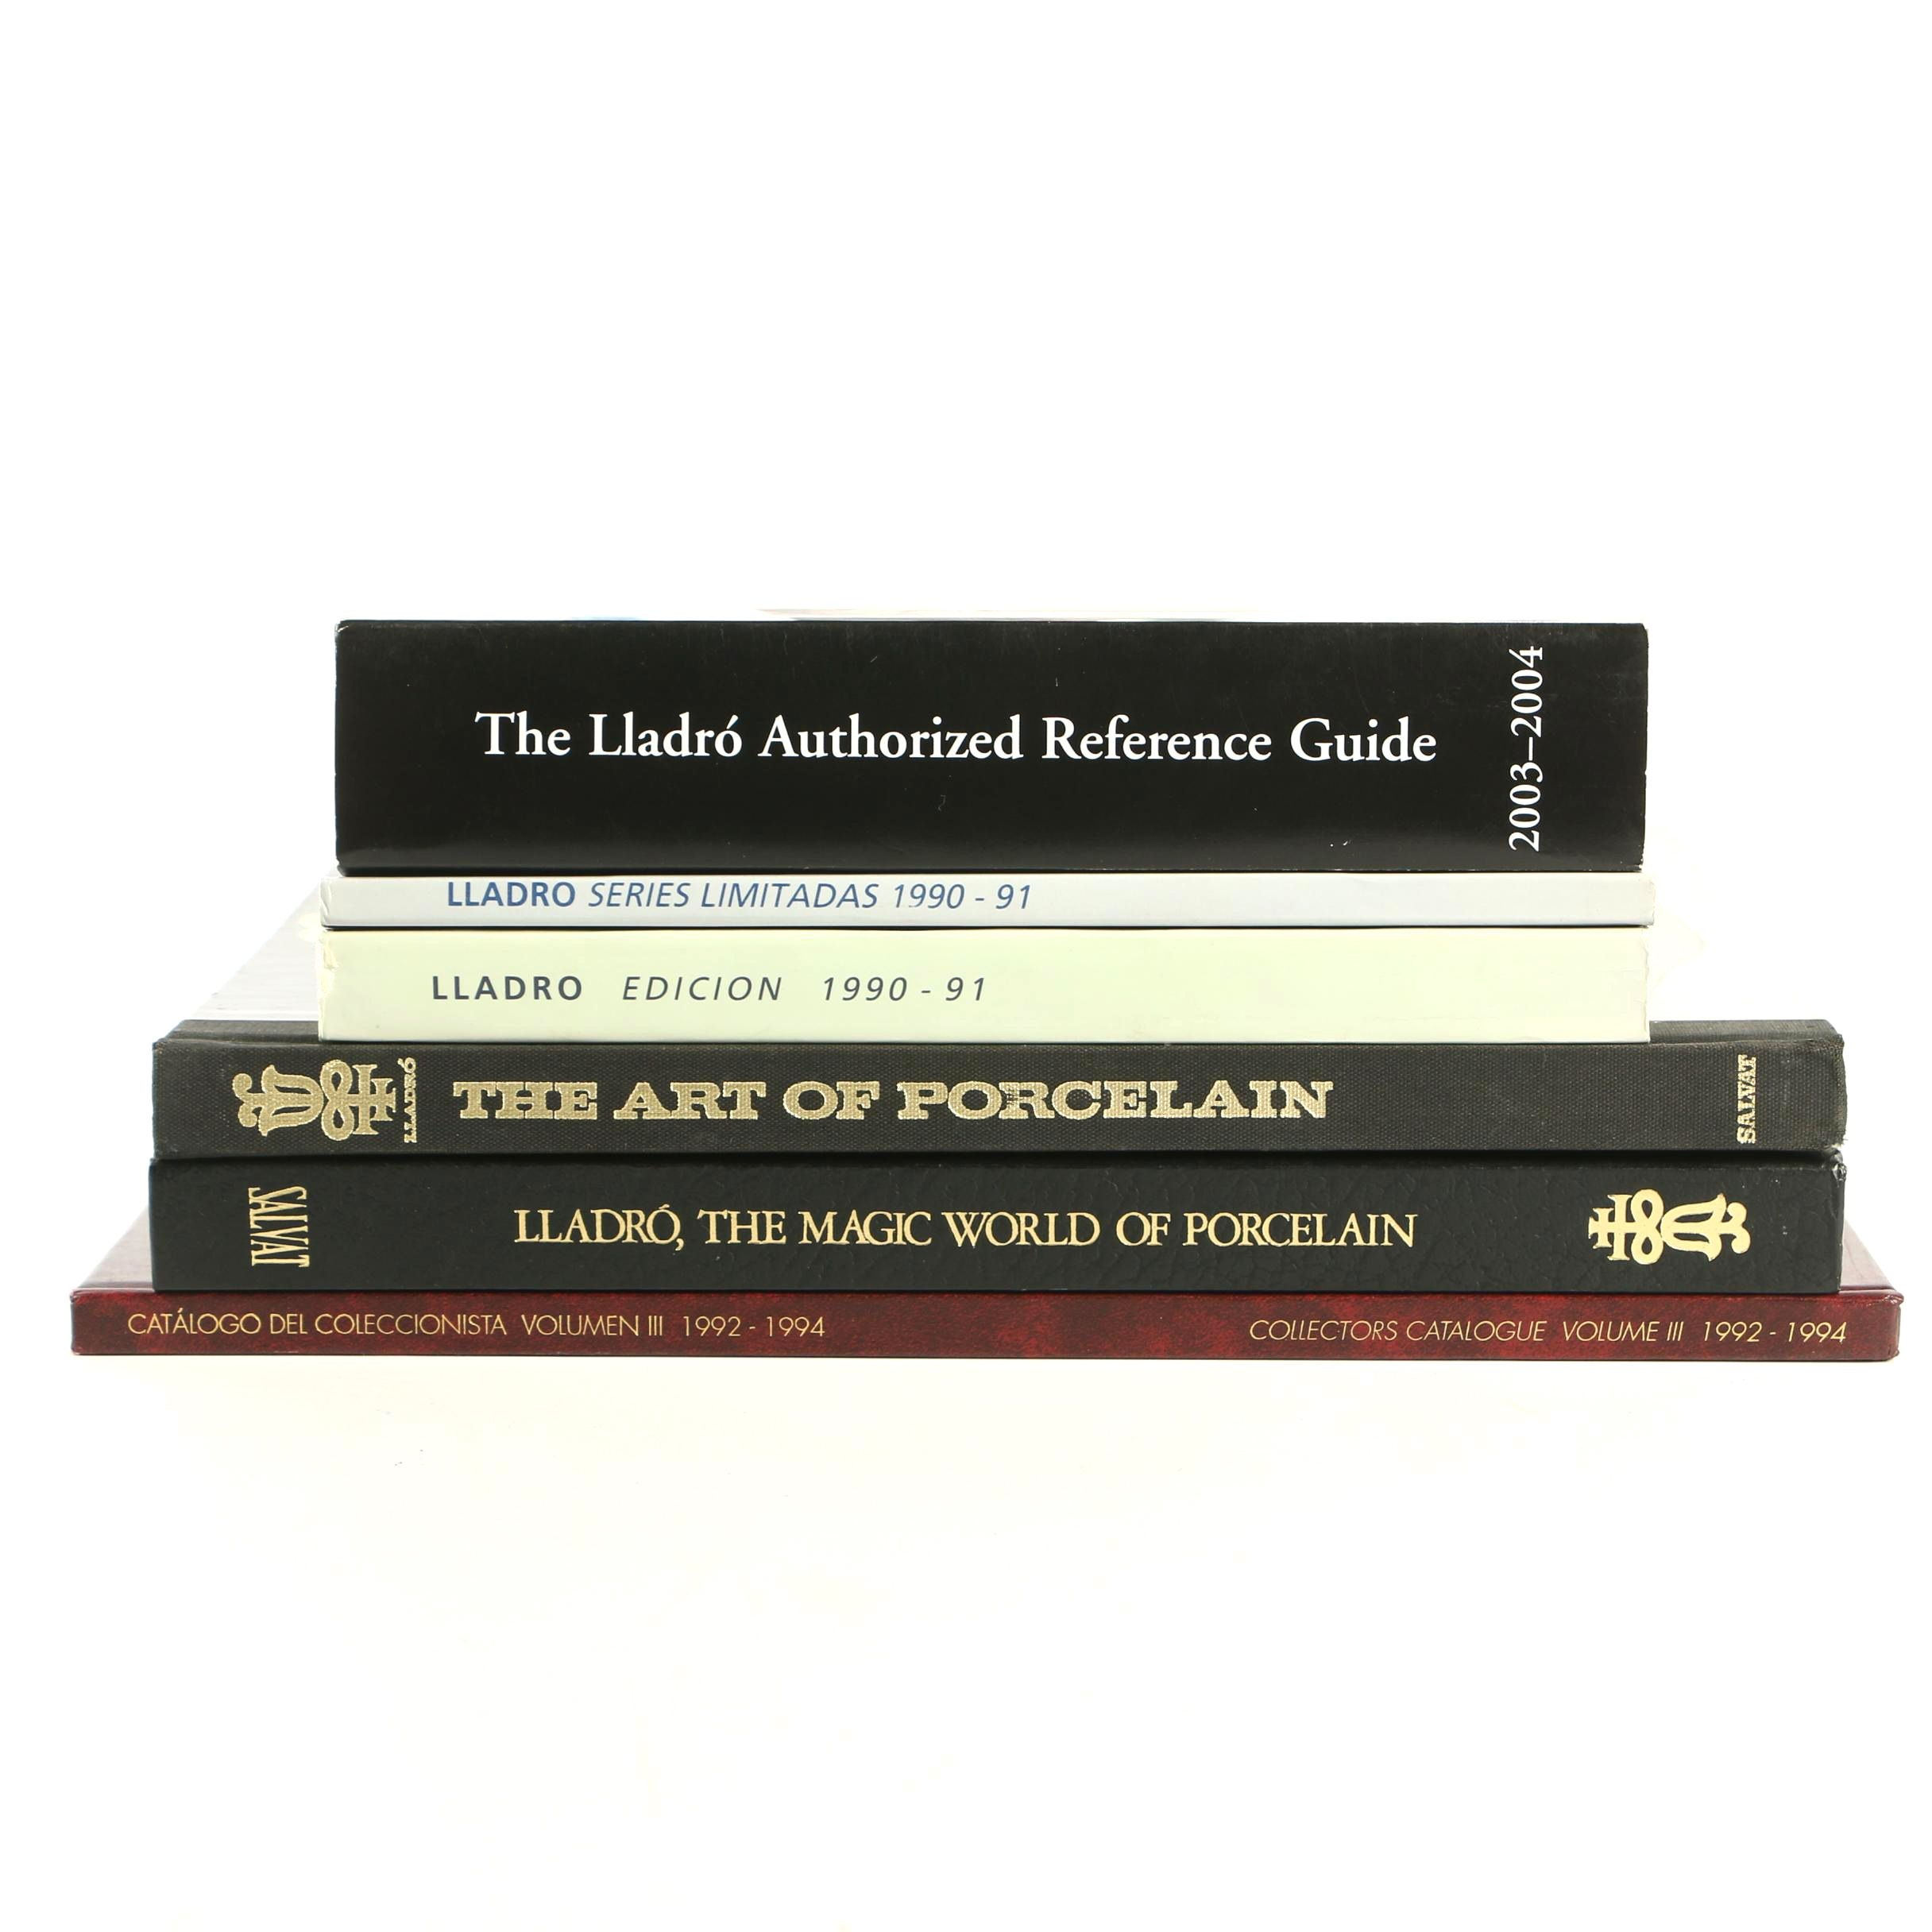 Lladró Books, Catalogs and Reference Guides